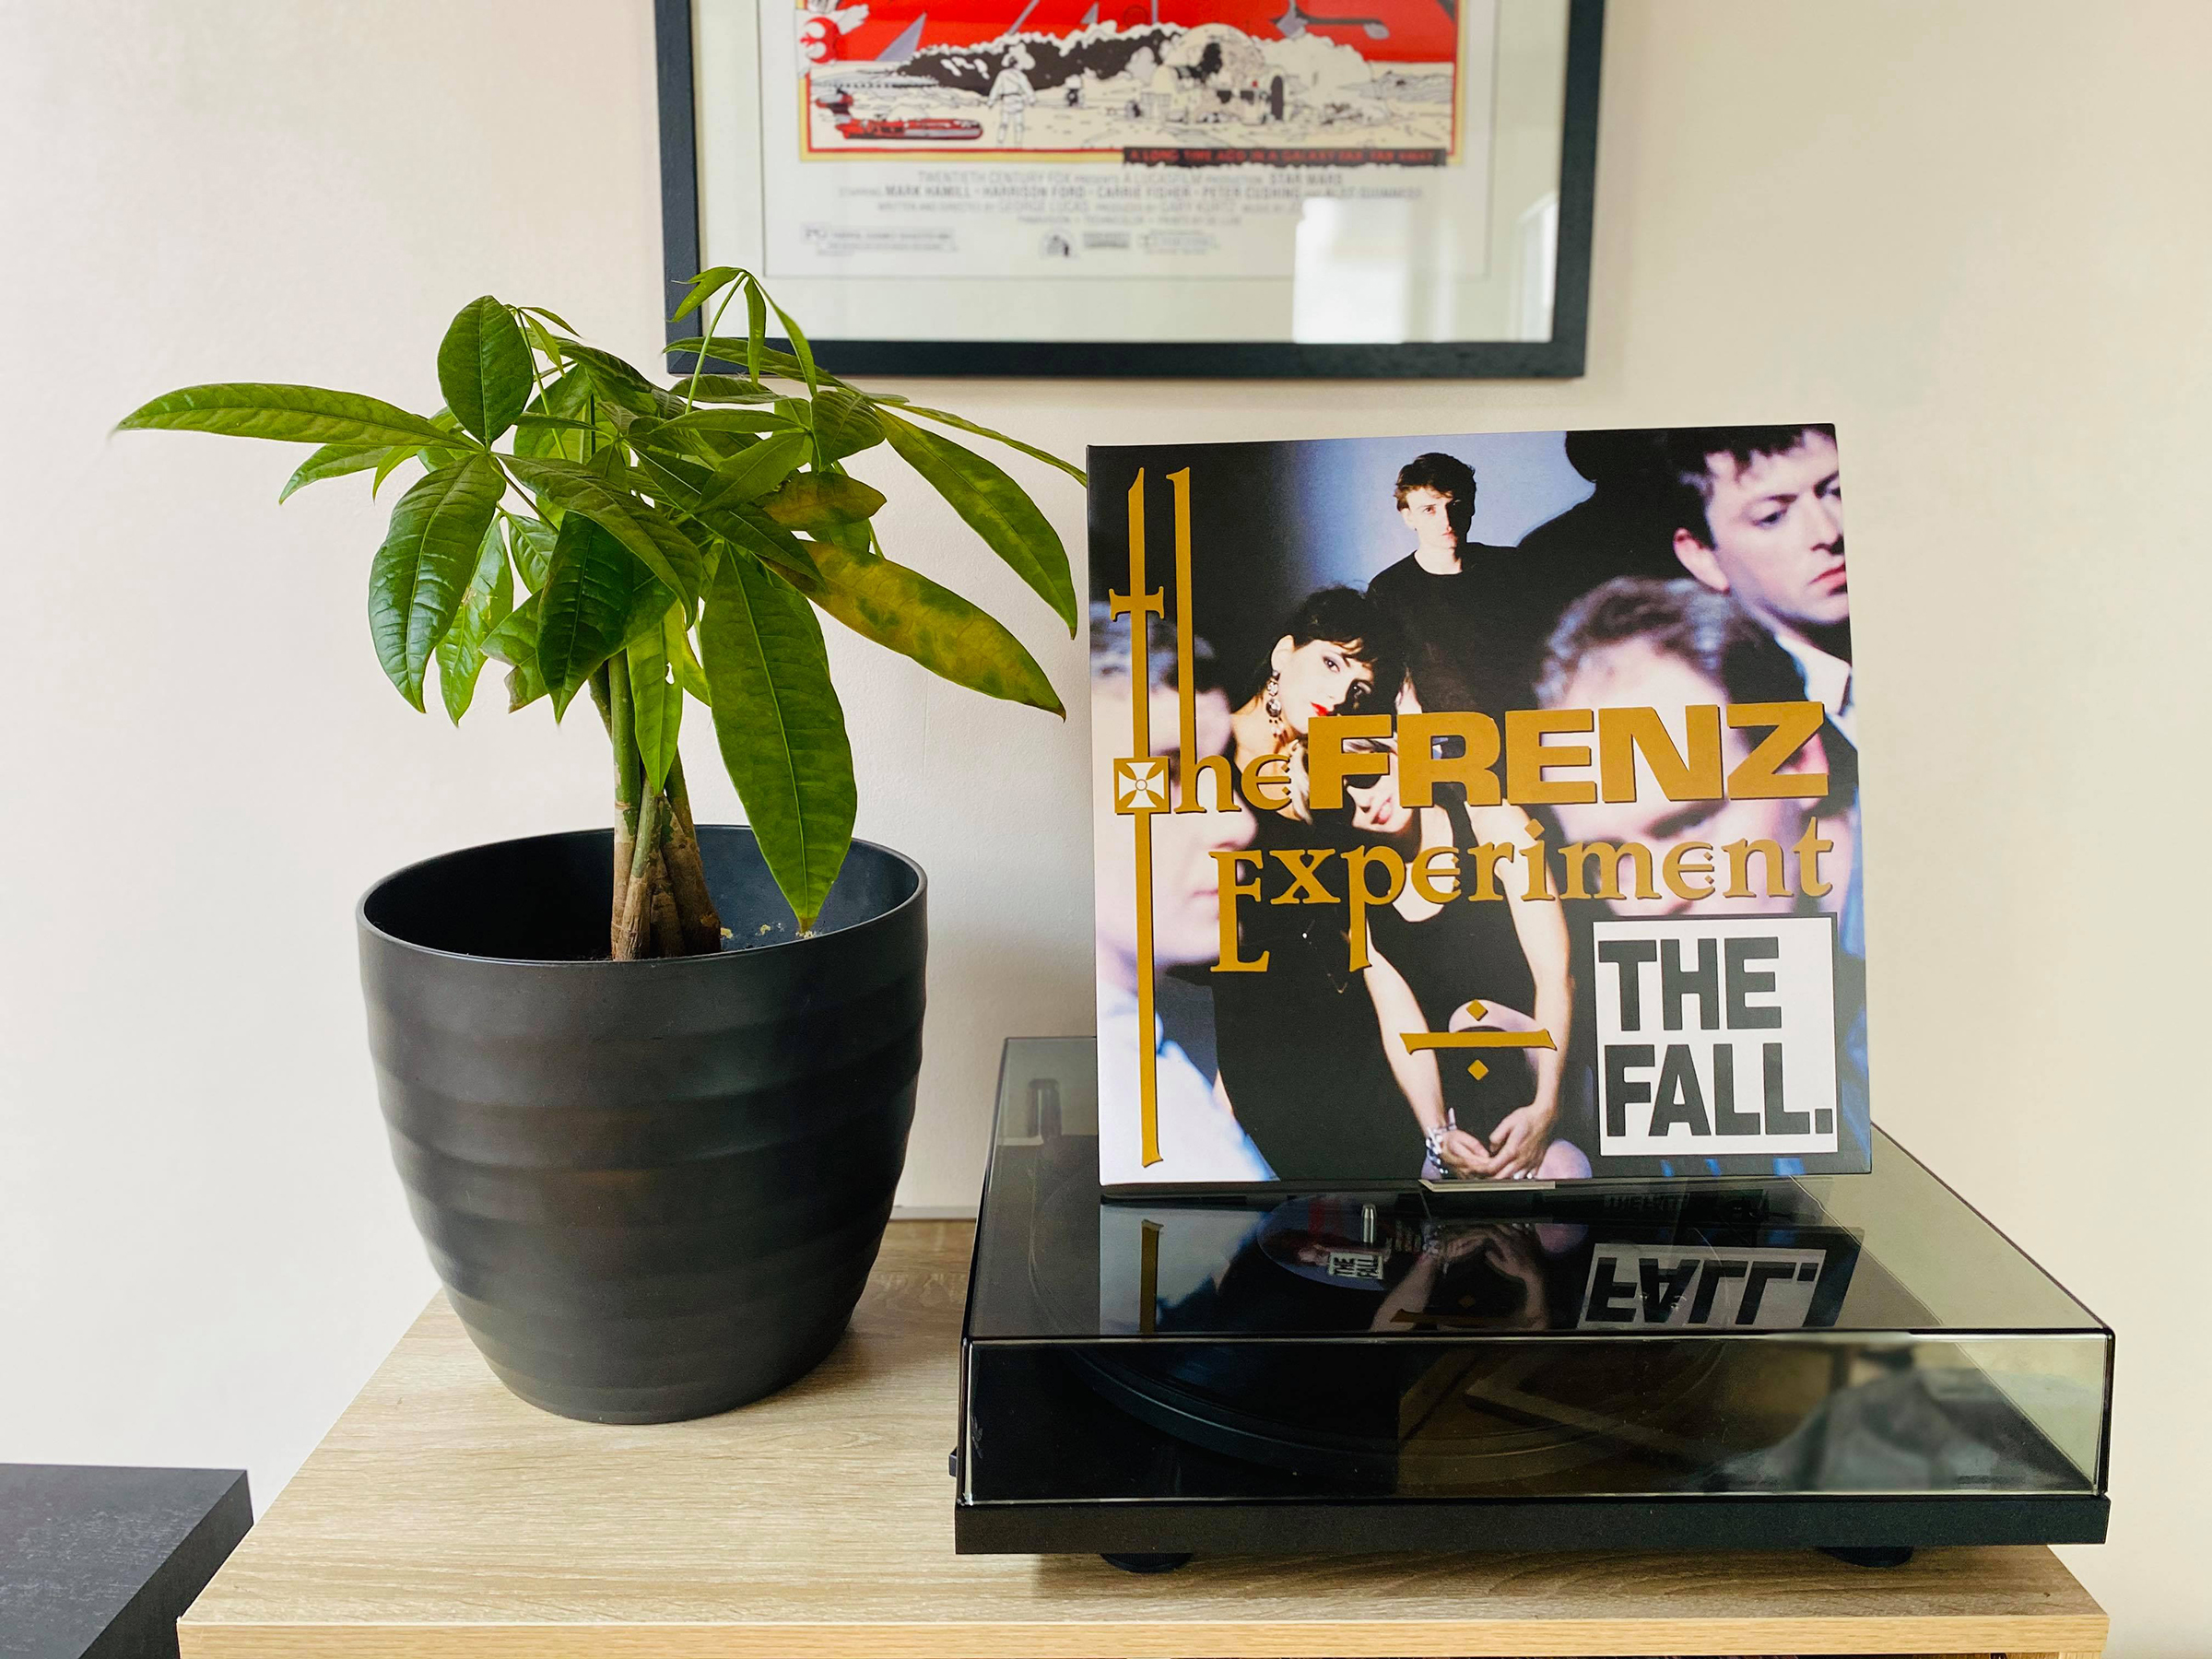 ON THE TURNTABLE: The Fall - The Frenz Experiment